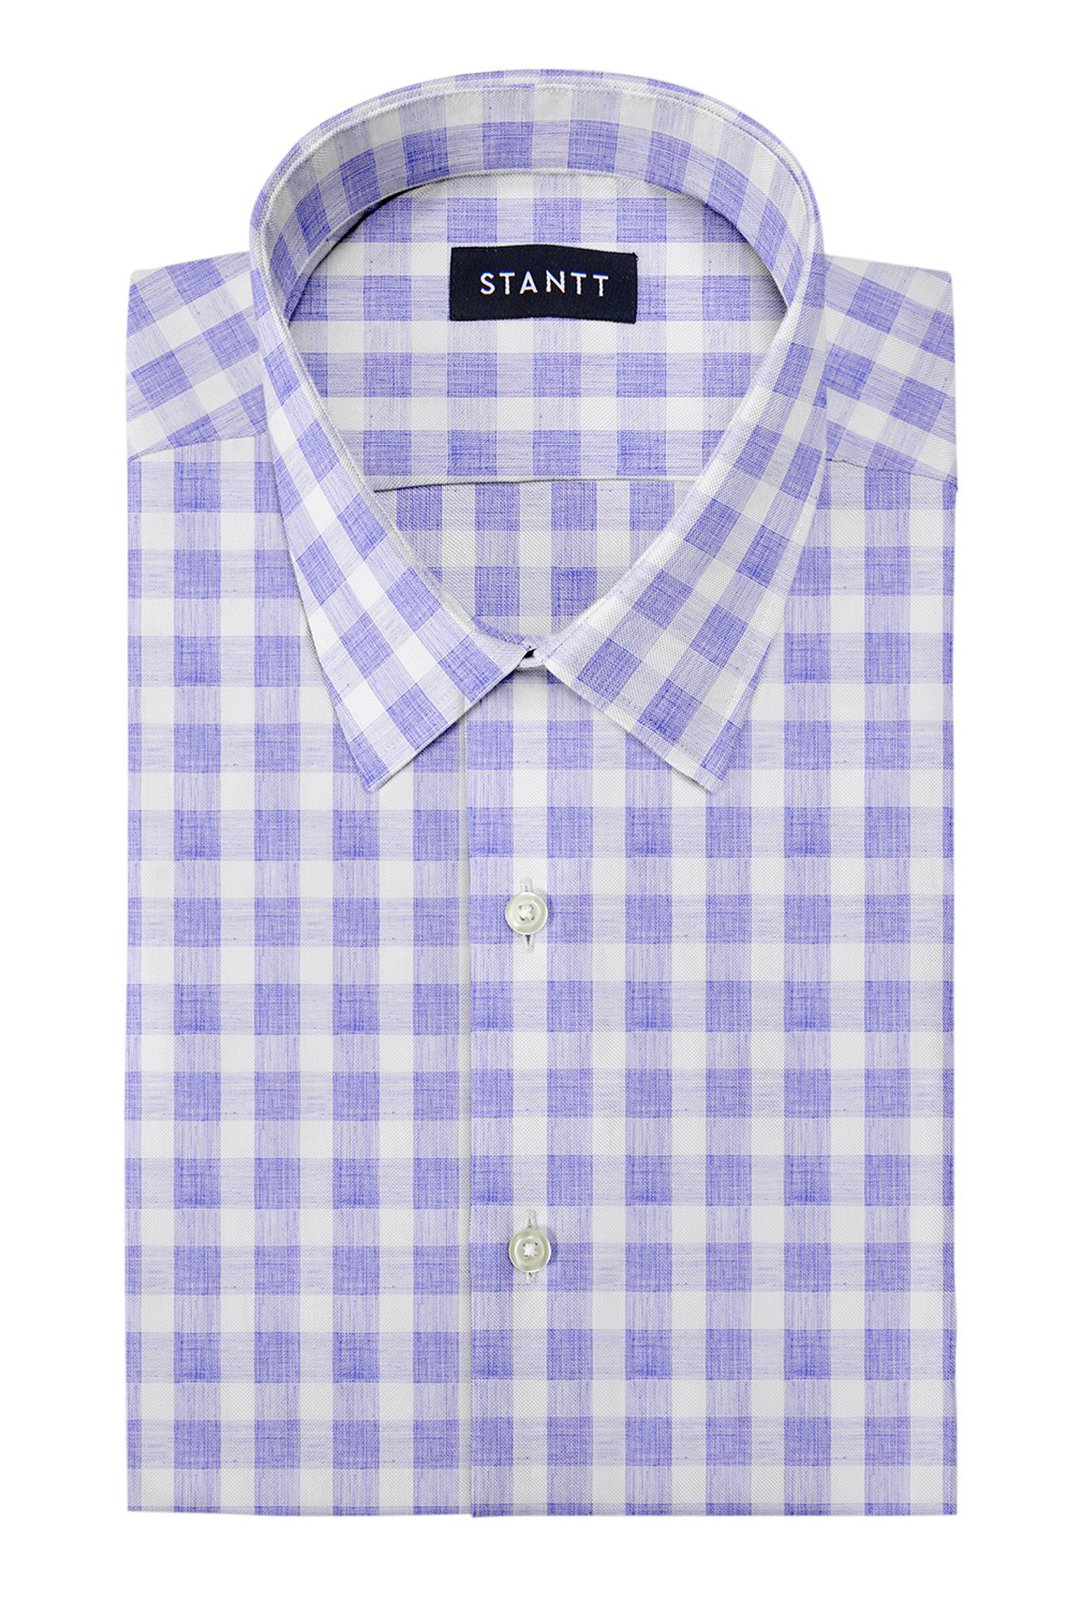 Heather Blue Buffalo Check: Semi-Spread Collar, French Cuff